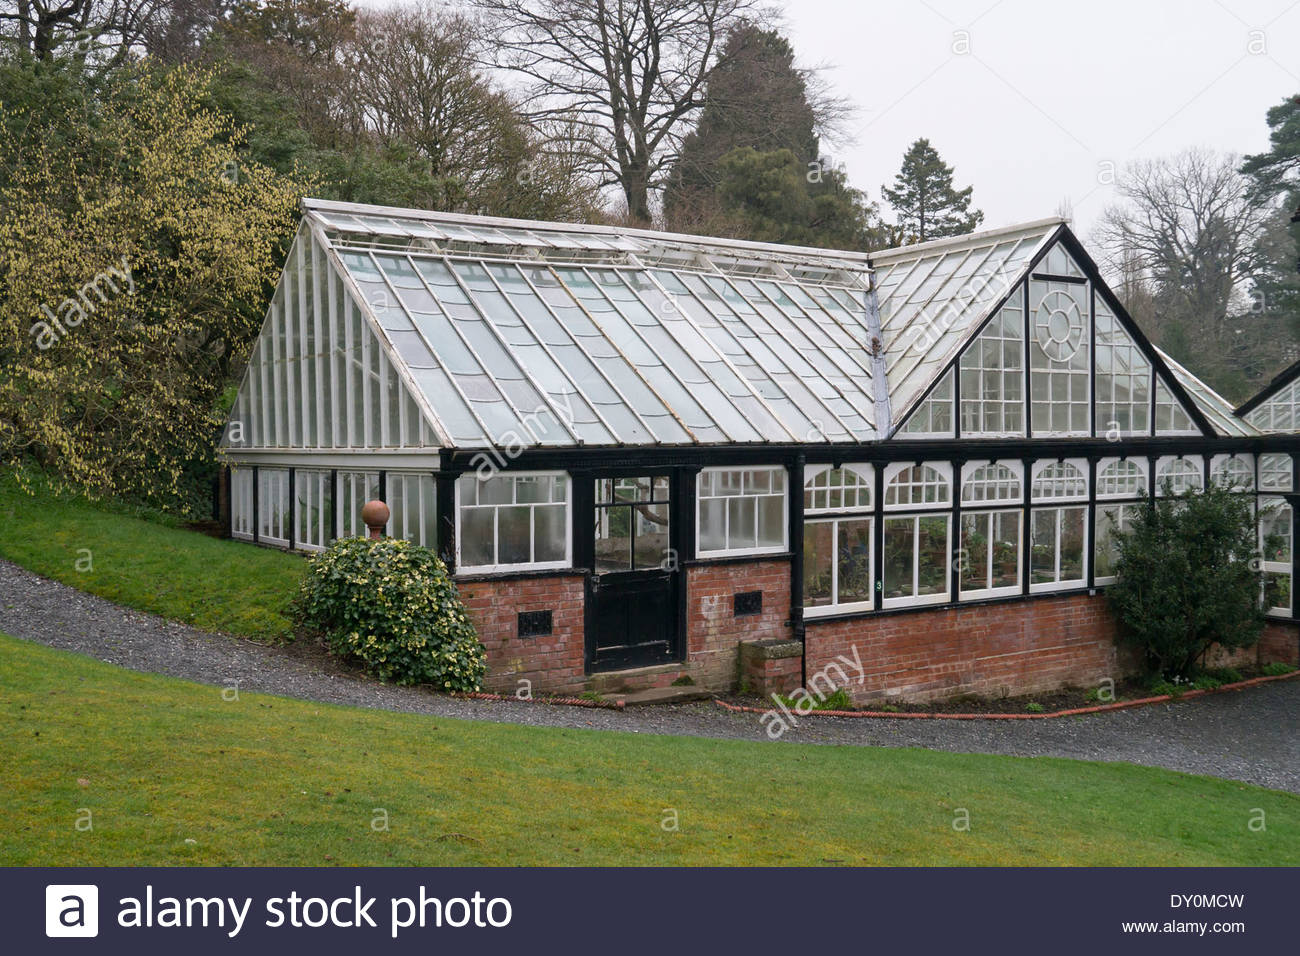 The greenhouse at Hergest Croft Gardens: Kington, Herefordshire, England. - Stock Image